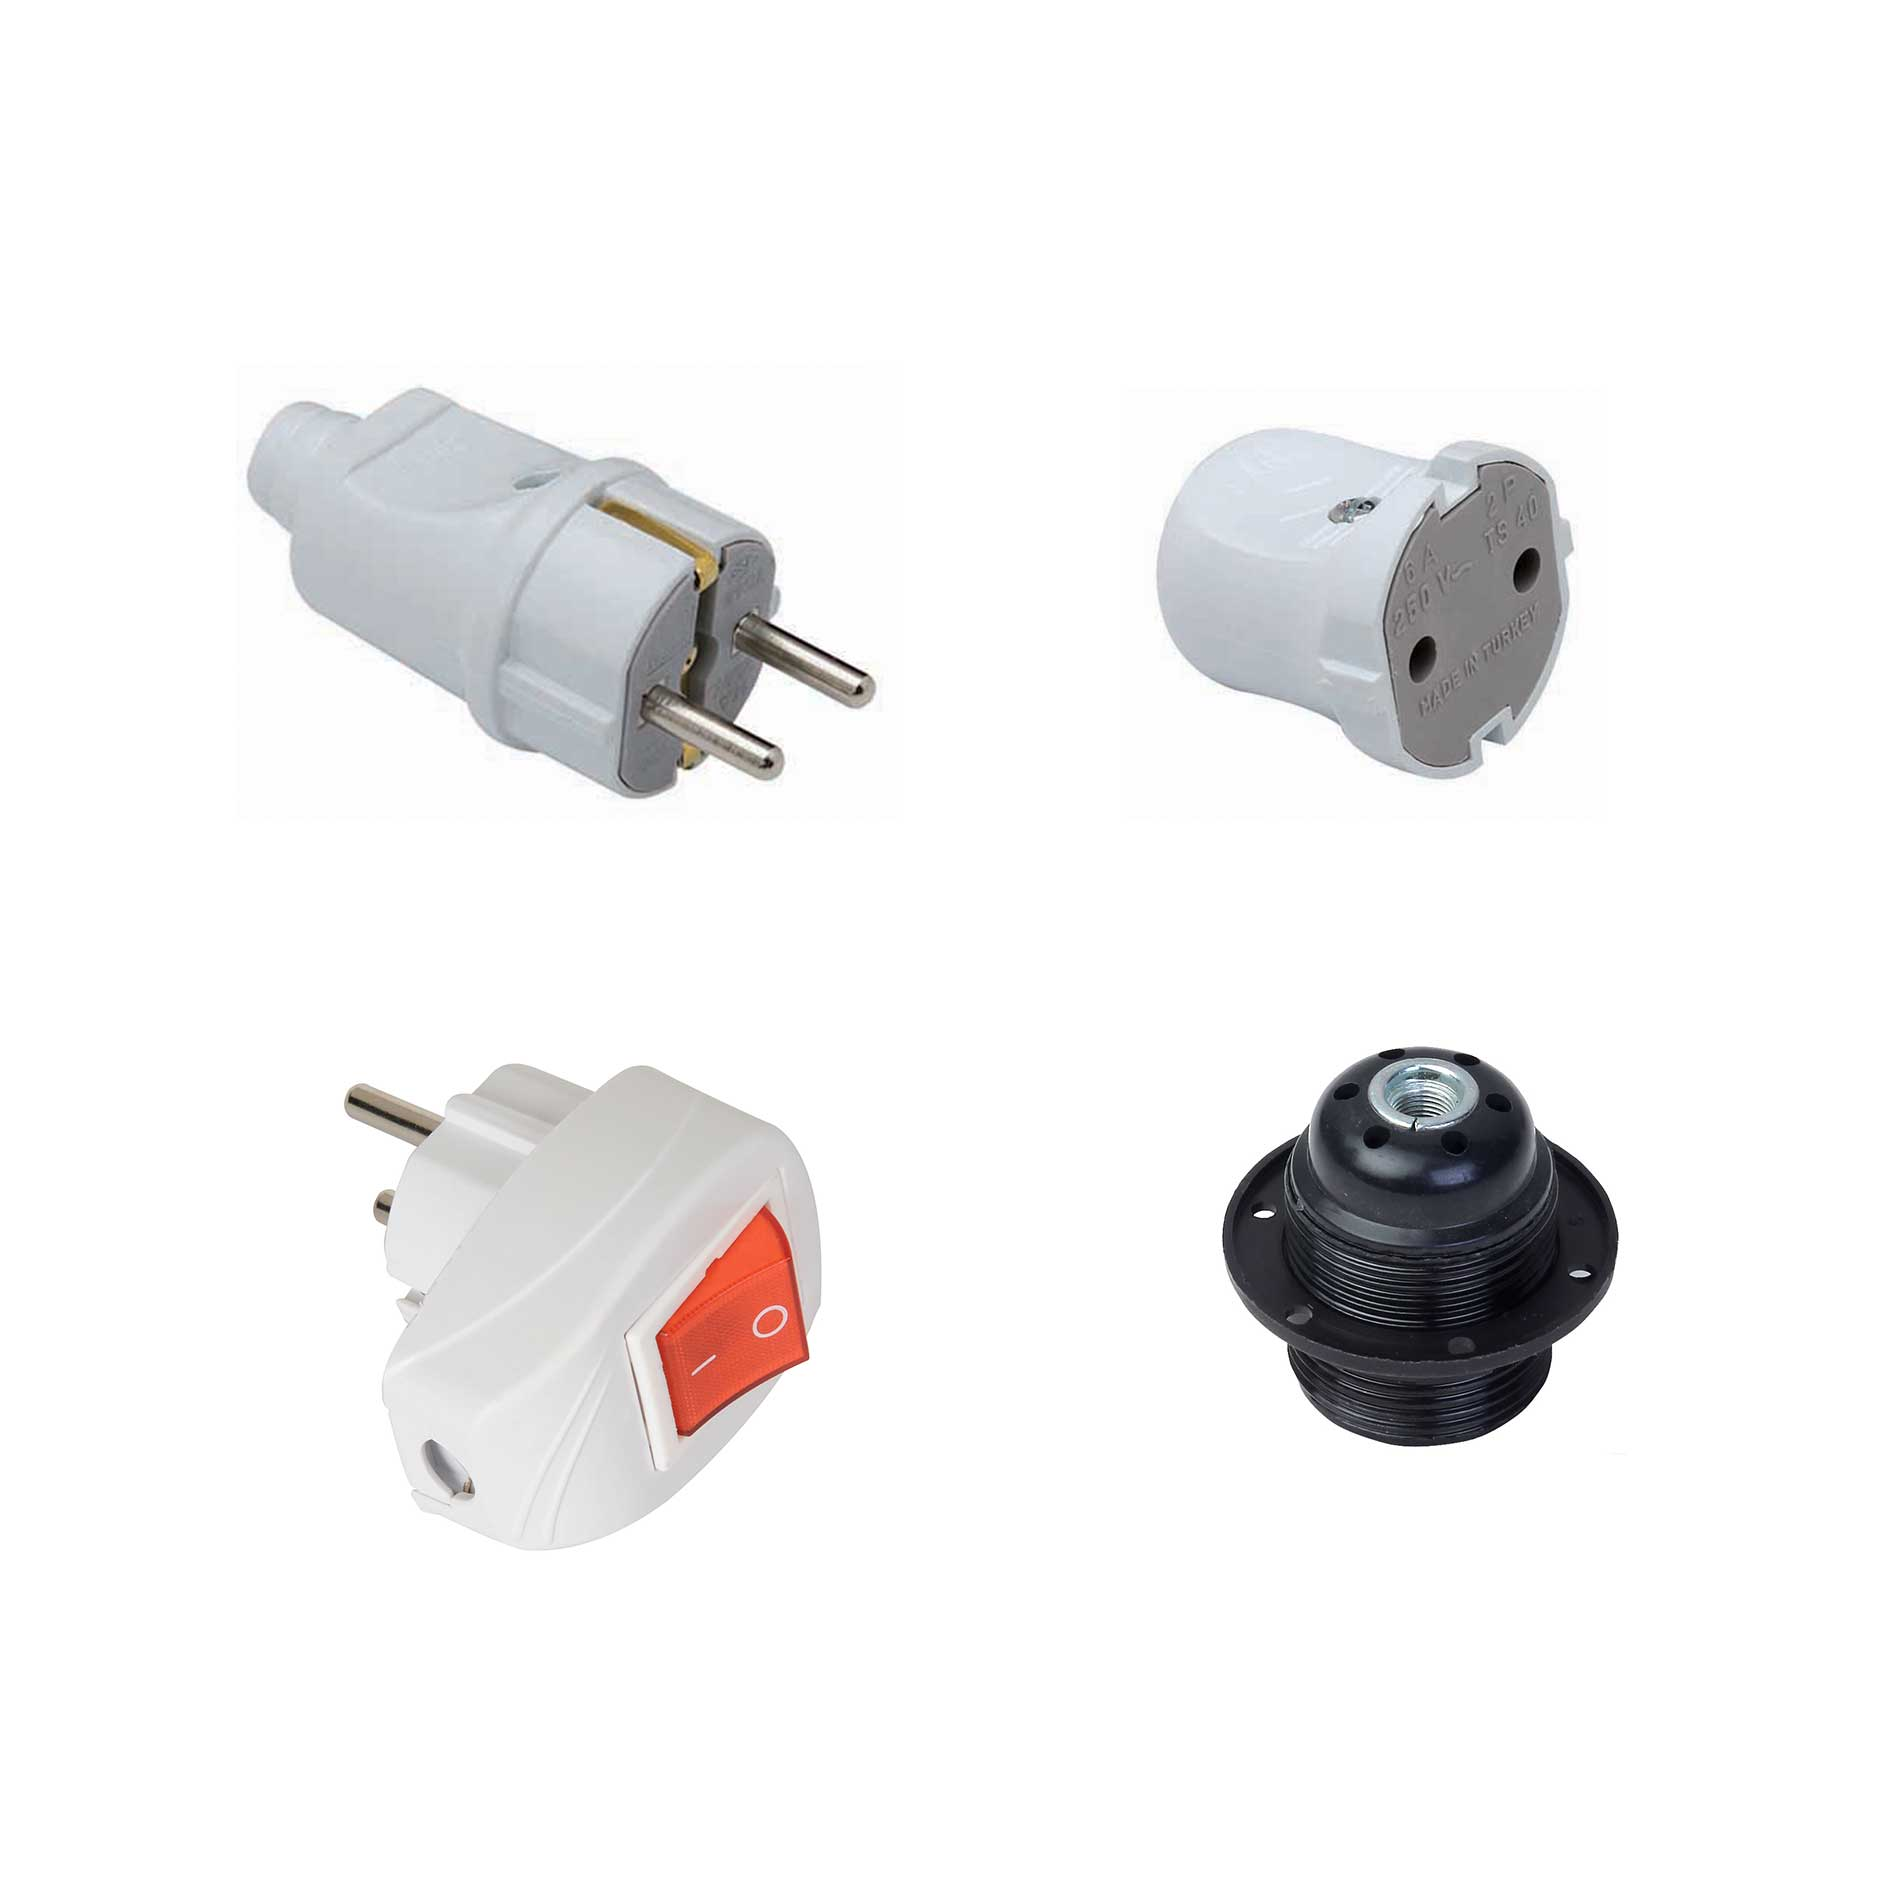 PLUG CONNECTIONS-ACCESSORIES